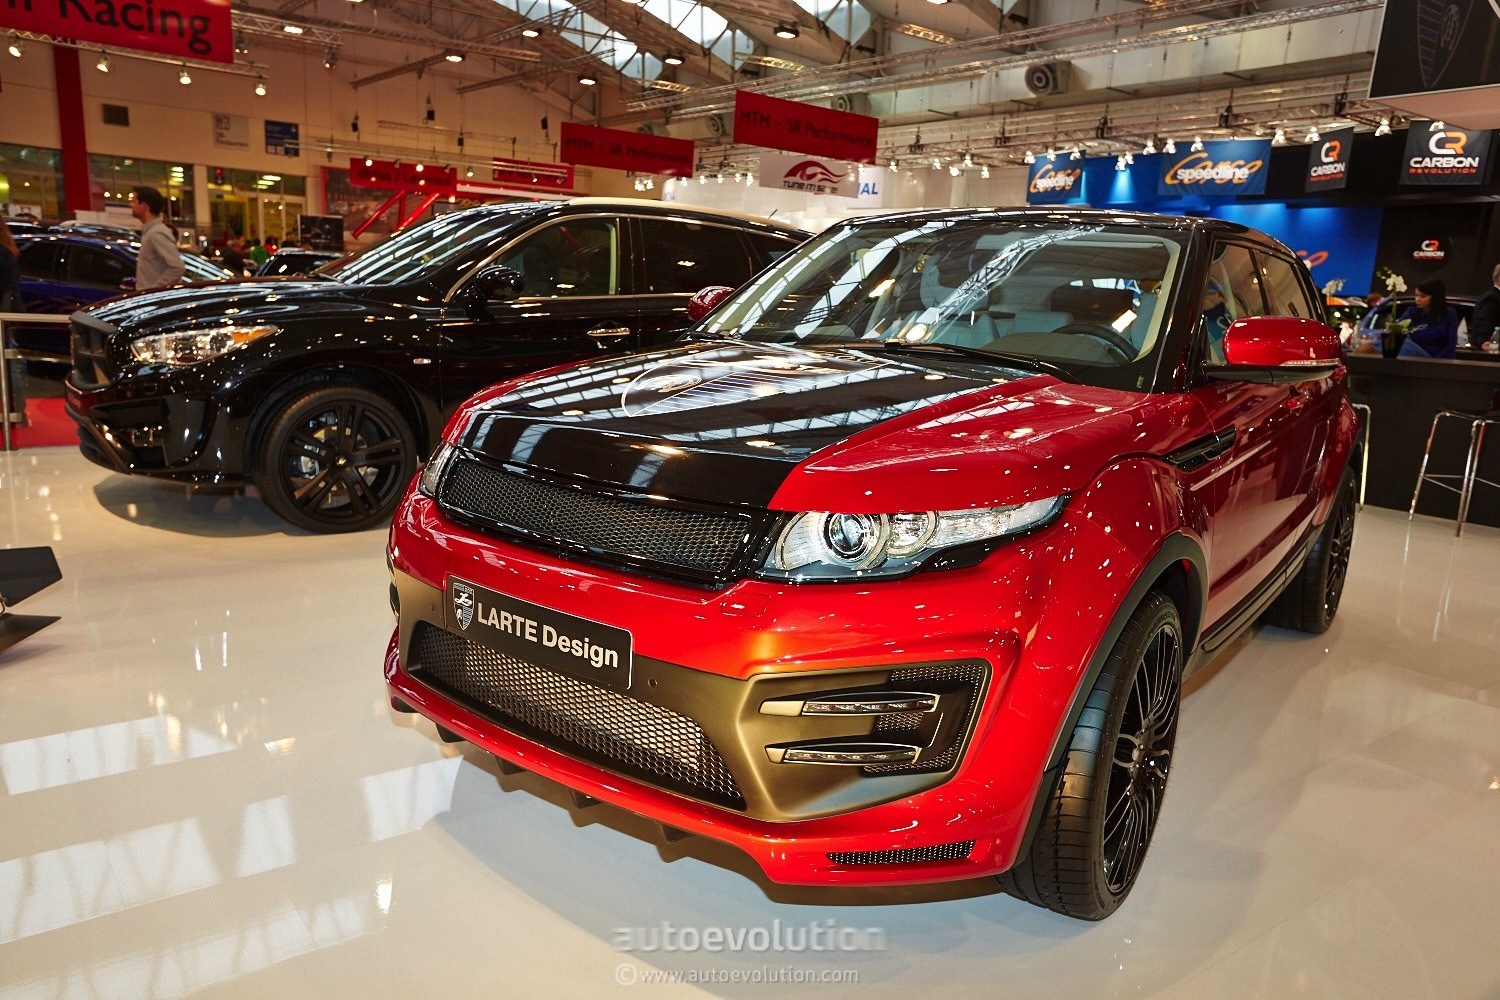 Design Automobile Essen Live Photos Larte Design Range Rover Evoque At The Essen